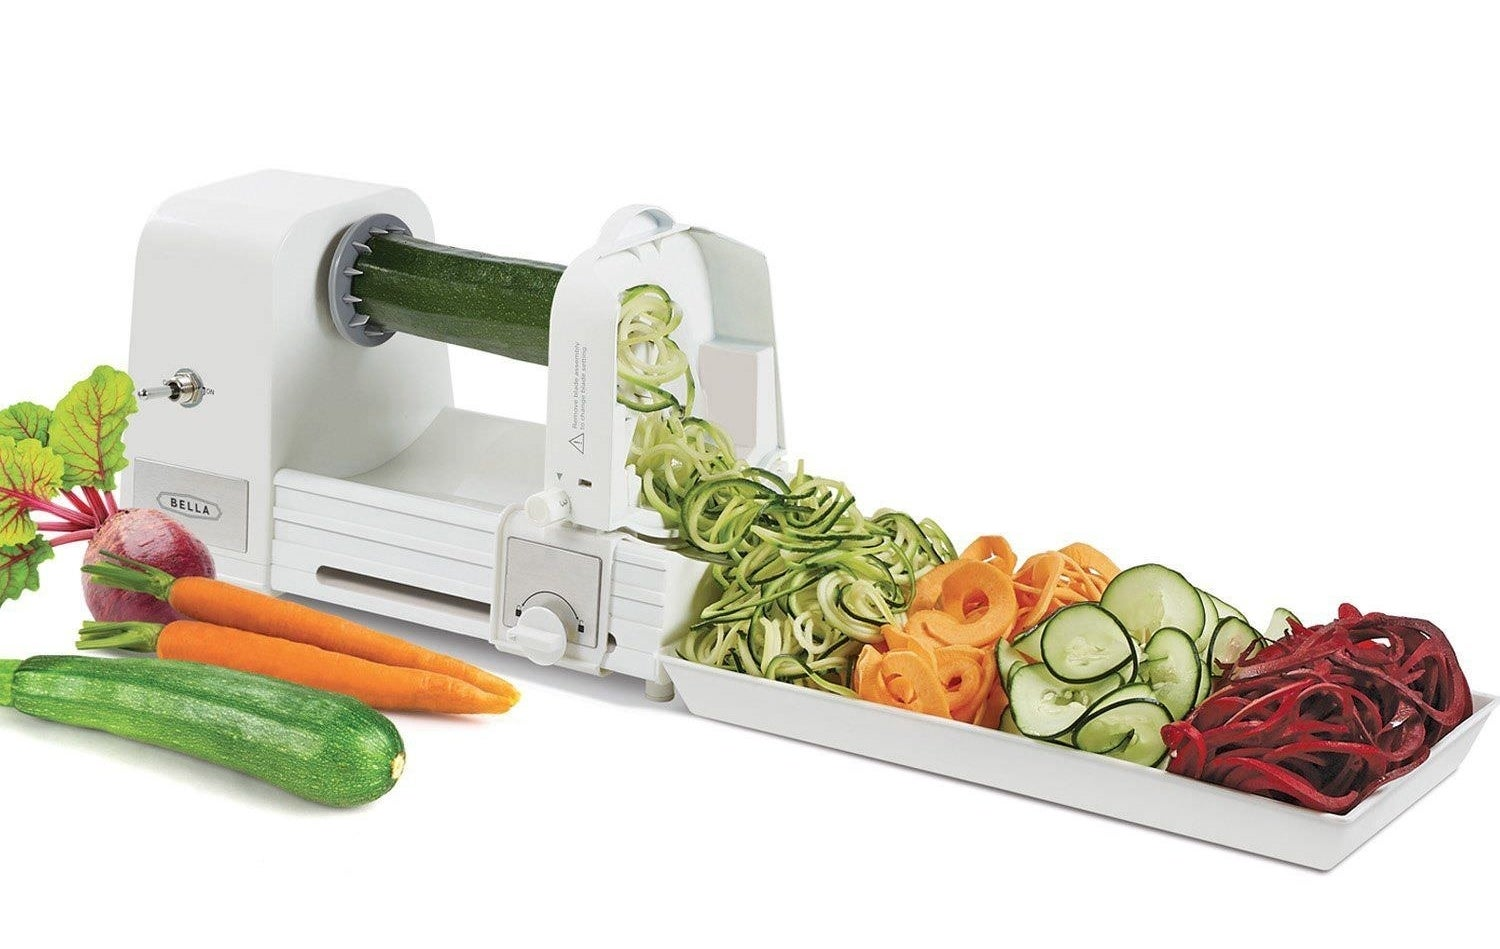 "All you have to do is insert your fave vegetable and turn the handle to create tasty veggie noodles. It's so easy even the laziest of cooks can enjoy it, and it's definitely a must-have item for any kitchen.Promising review: ""I was so excited to try out this spiralizer. I was trying to find ways to get my kids to eat more vegetables, and I think this is a great solution. It was much more compact than I anticipated, which is great for storage. It took me a few minutes to figure out how to use the blade part of it, but once I got it figured out, it was a breeze. I tried a potato first and was impressed with how easy and quick it was to make fettuccini-shaped potato strings...so FUN!! I can't wait to try so many new veggies and fruits. I highly recommend!!"" —Mreeves77Get it from Walmart for $22.13."